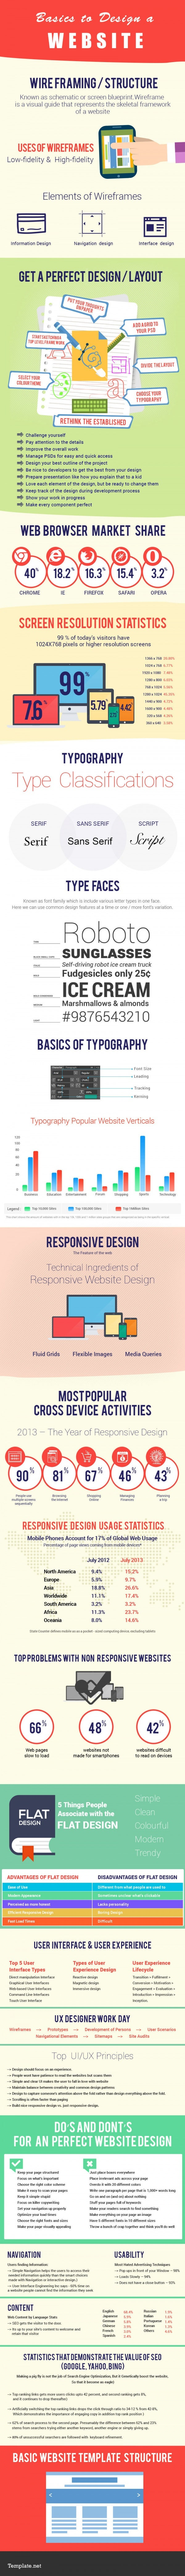 basics to design a website infographic